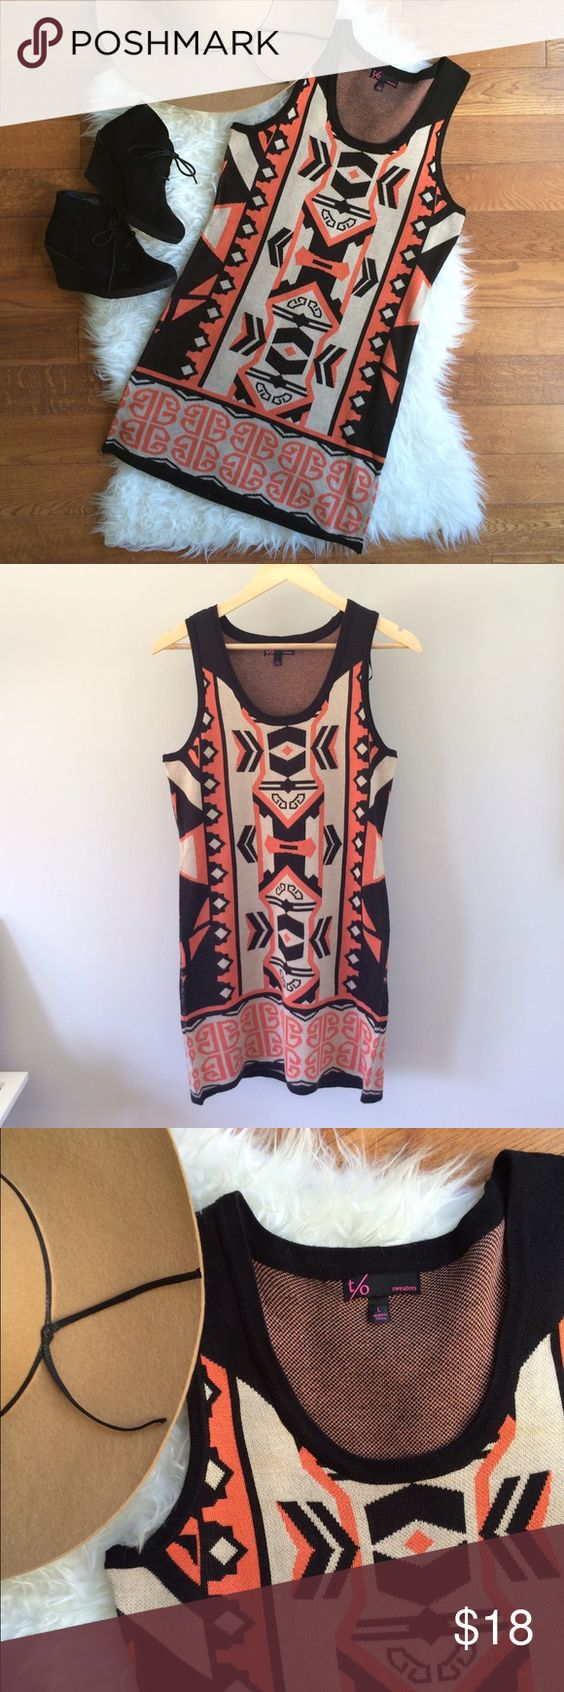 Tribal Print Sleeveless Sweater Dress NWOT Brand new adorable sweater dress, so perfect for fall! Pair this tribal print piece with leather leggings (cross-listed!) and wedge booties for easy weekend style. Never worn, NWOT, 32in shoulder to hem. t/o Dresses